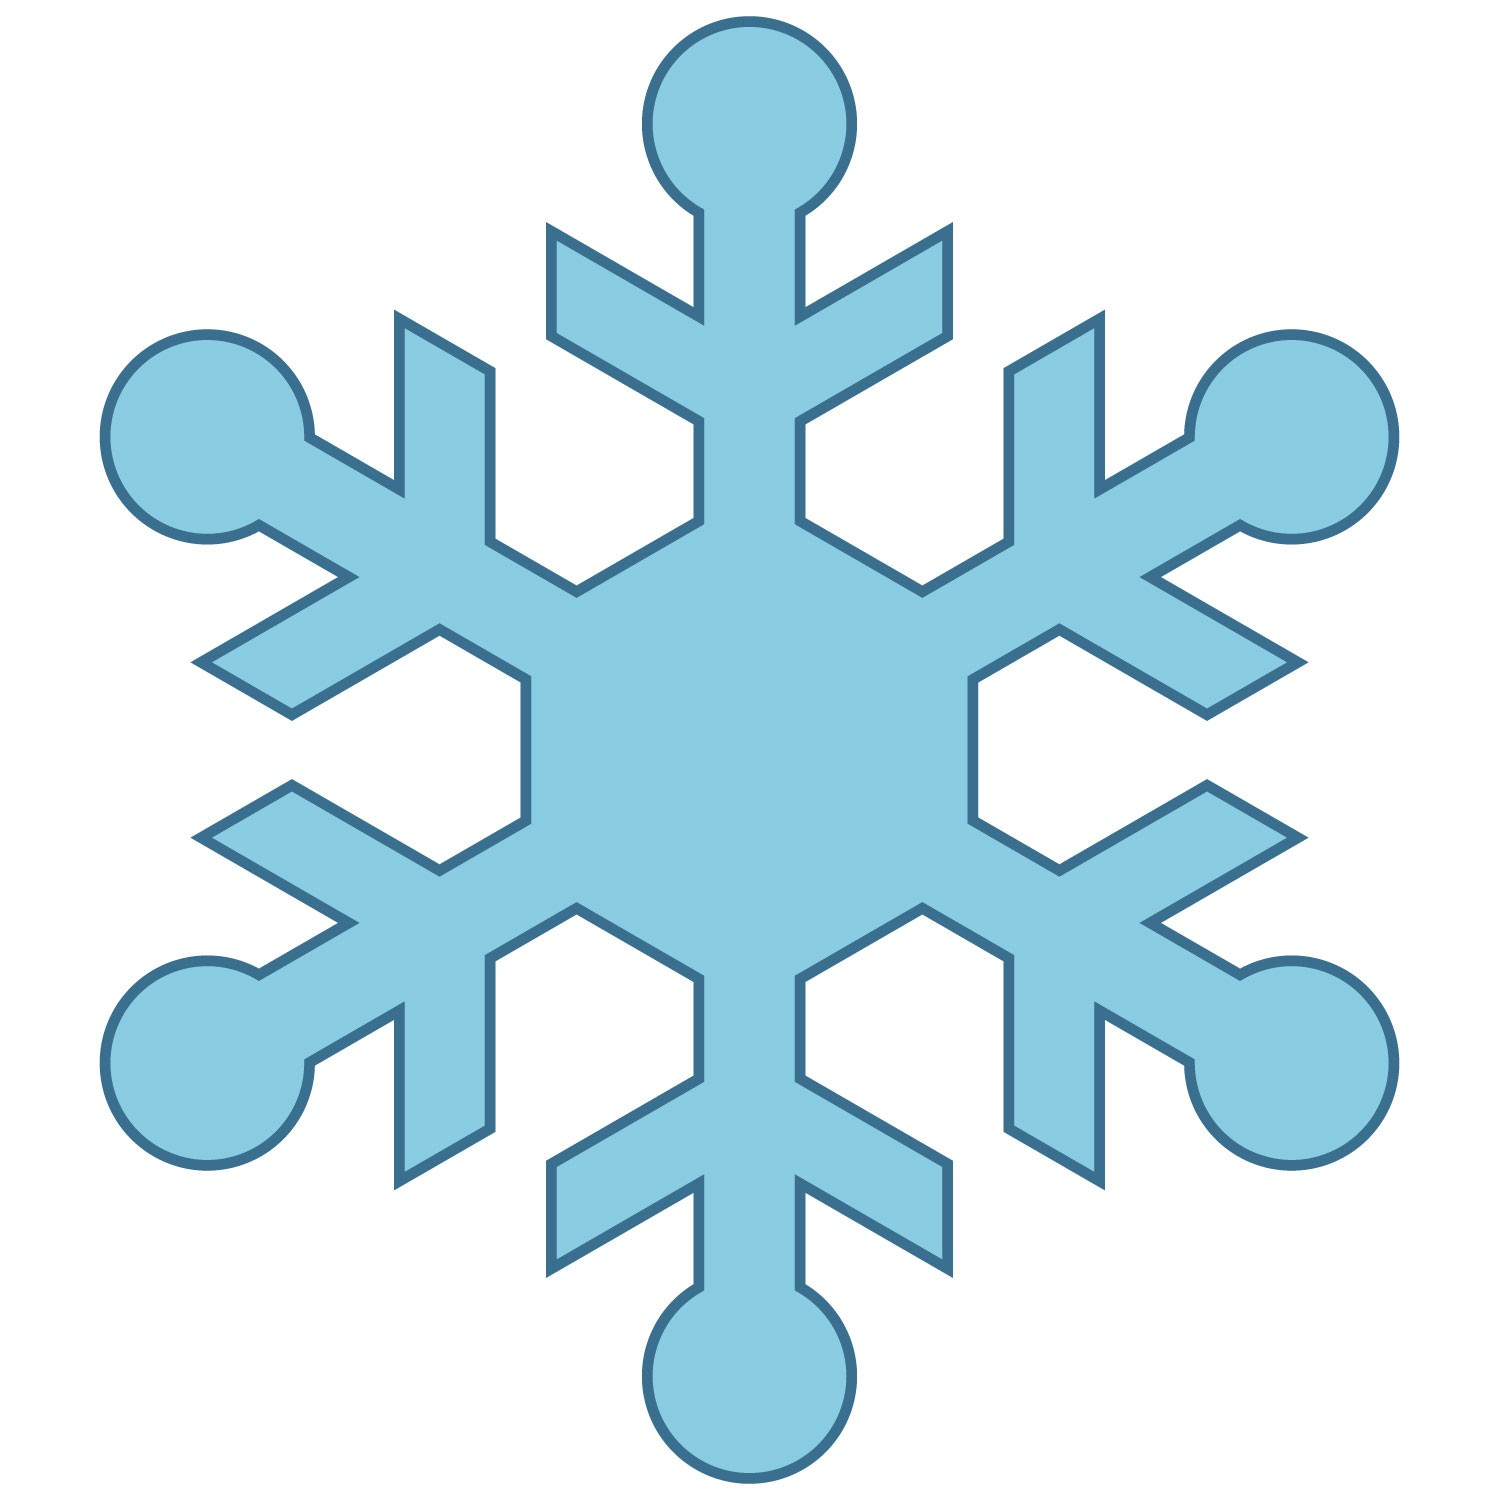 4041 Snowflakes free clipart.